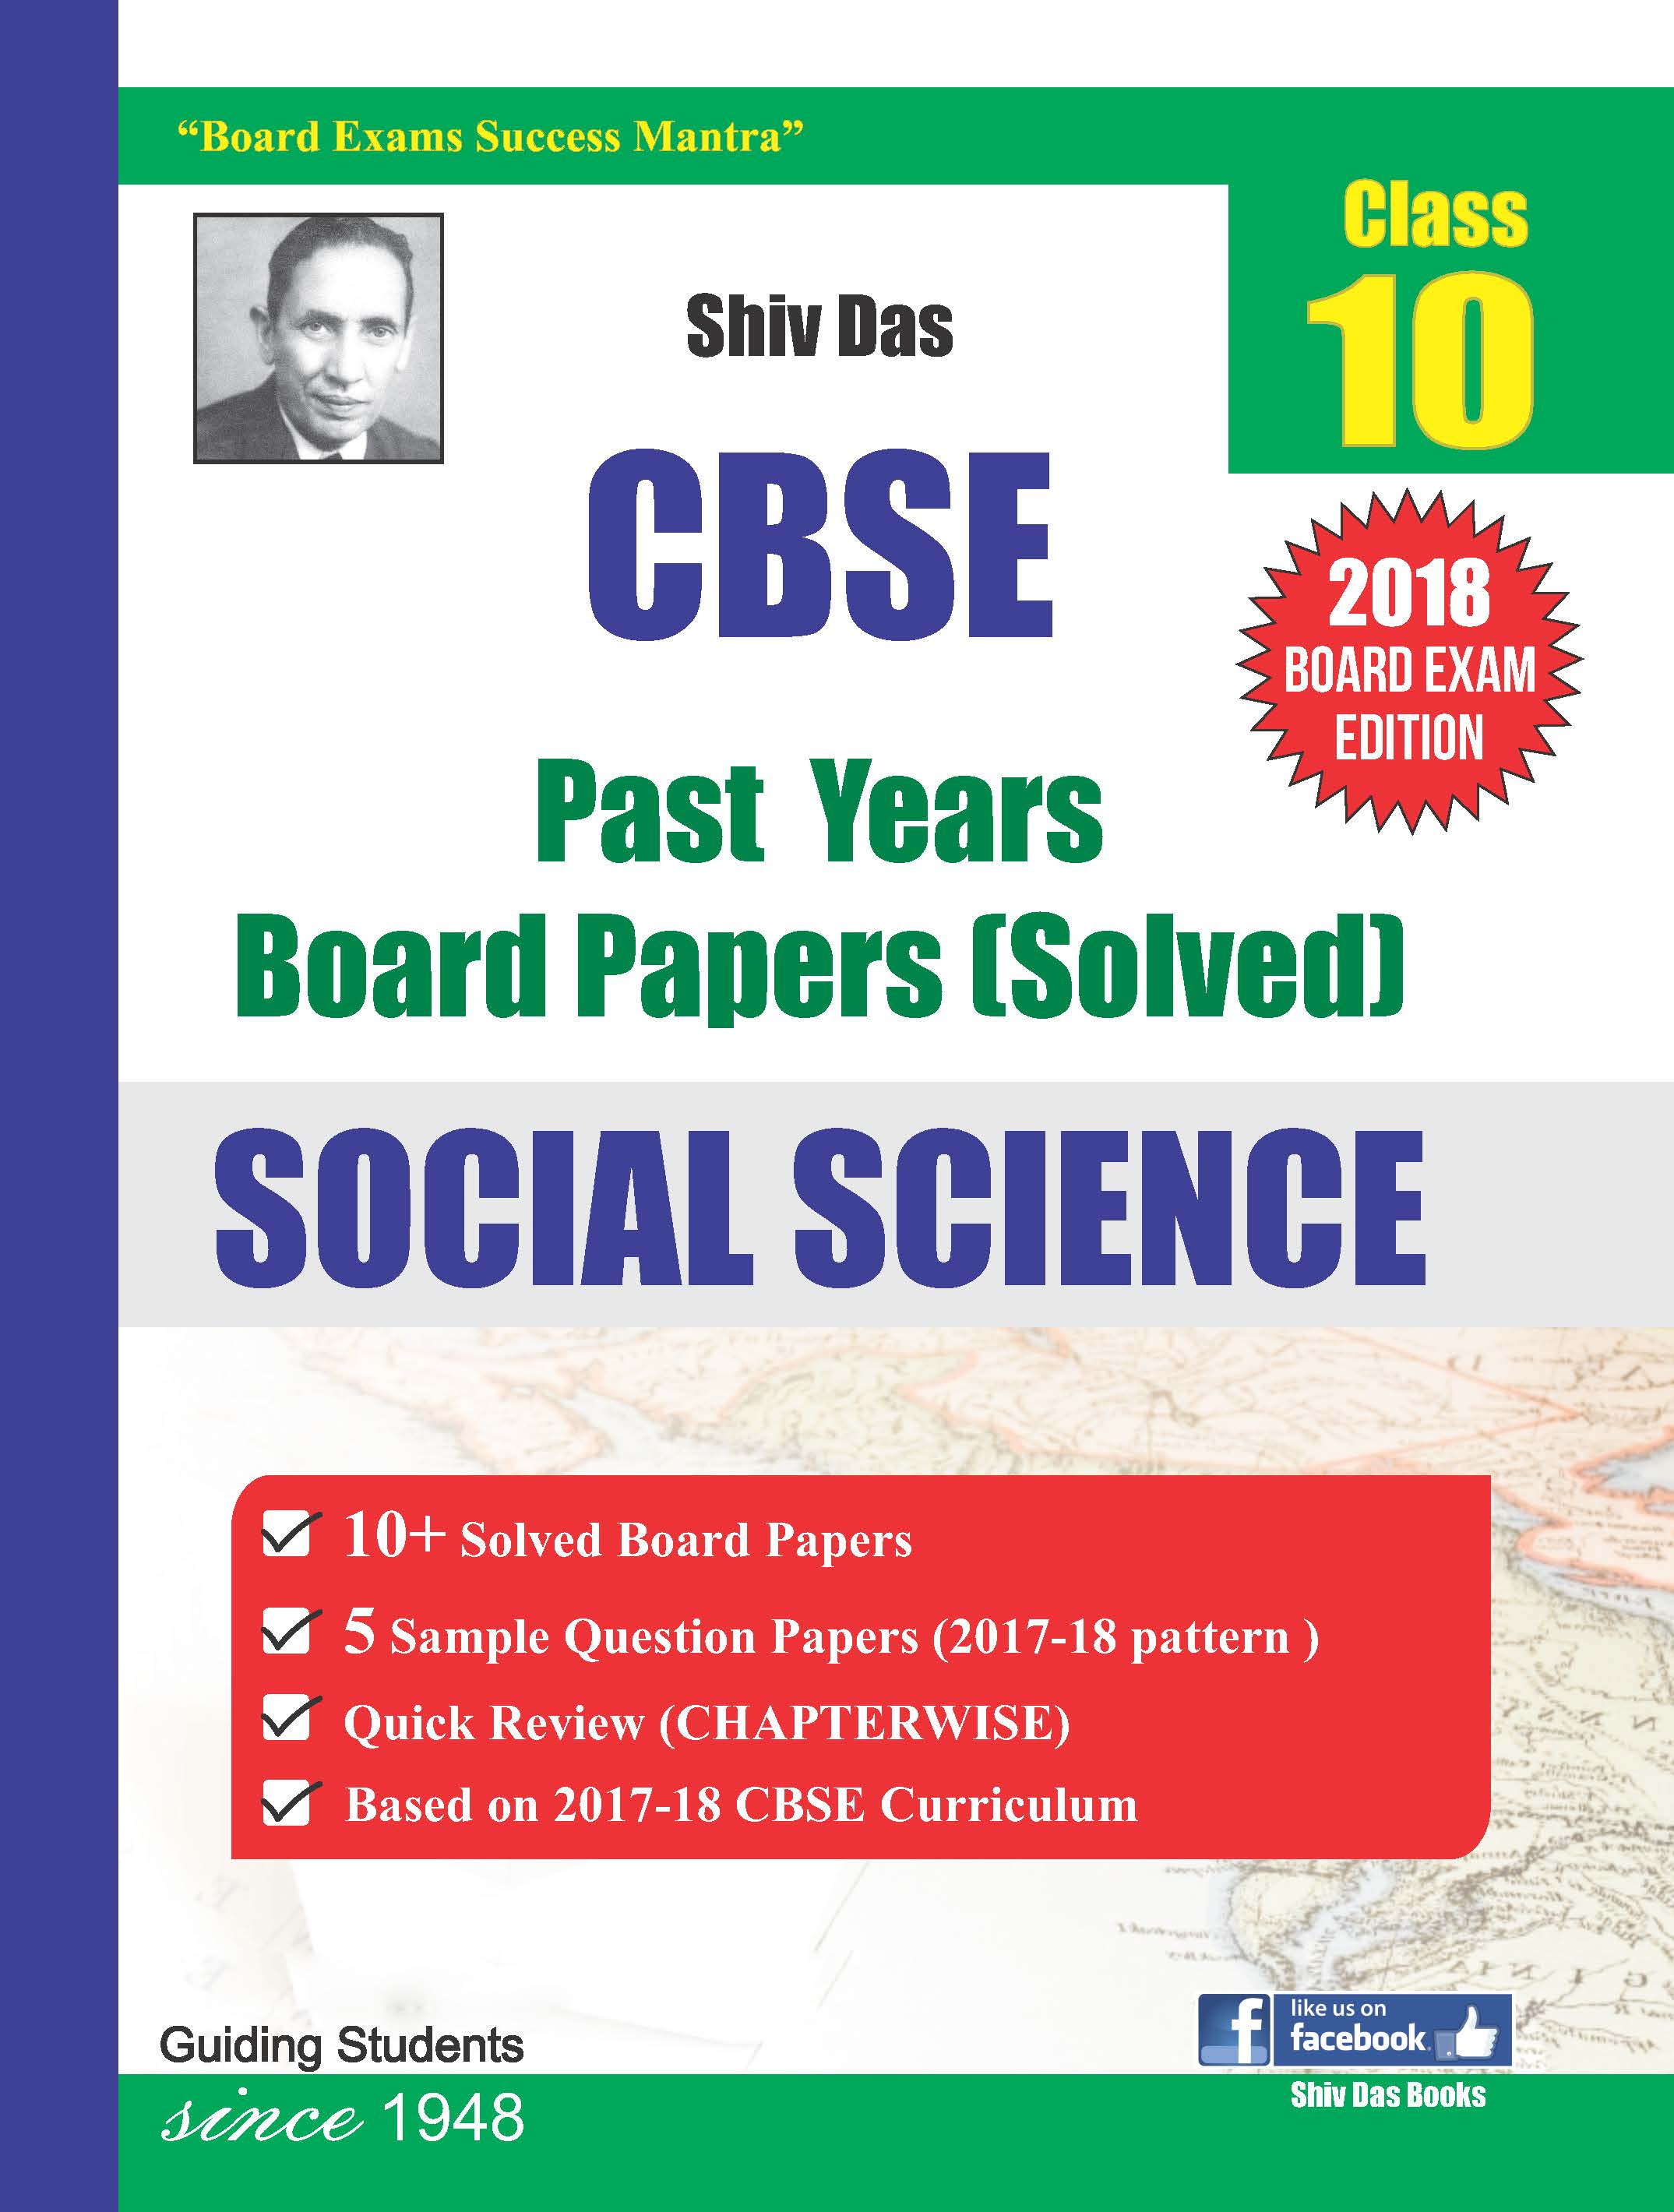 Class 10 CBSE Past Year Board Papers (Solved) Social Science